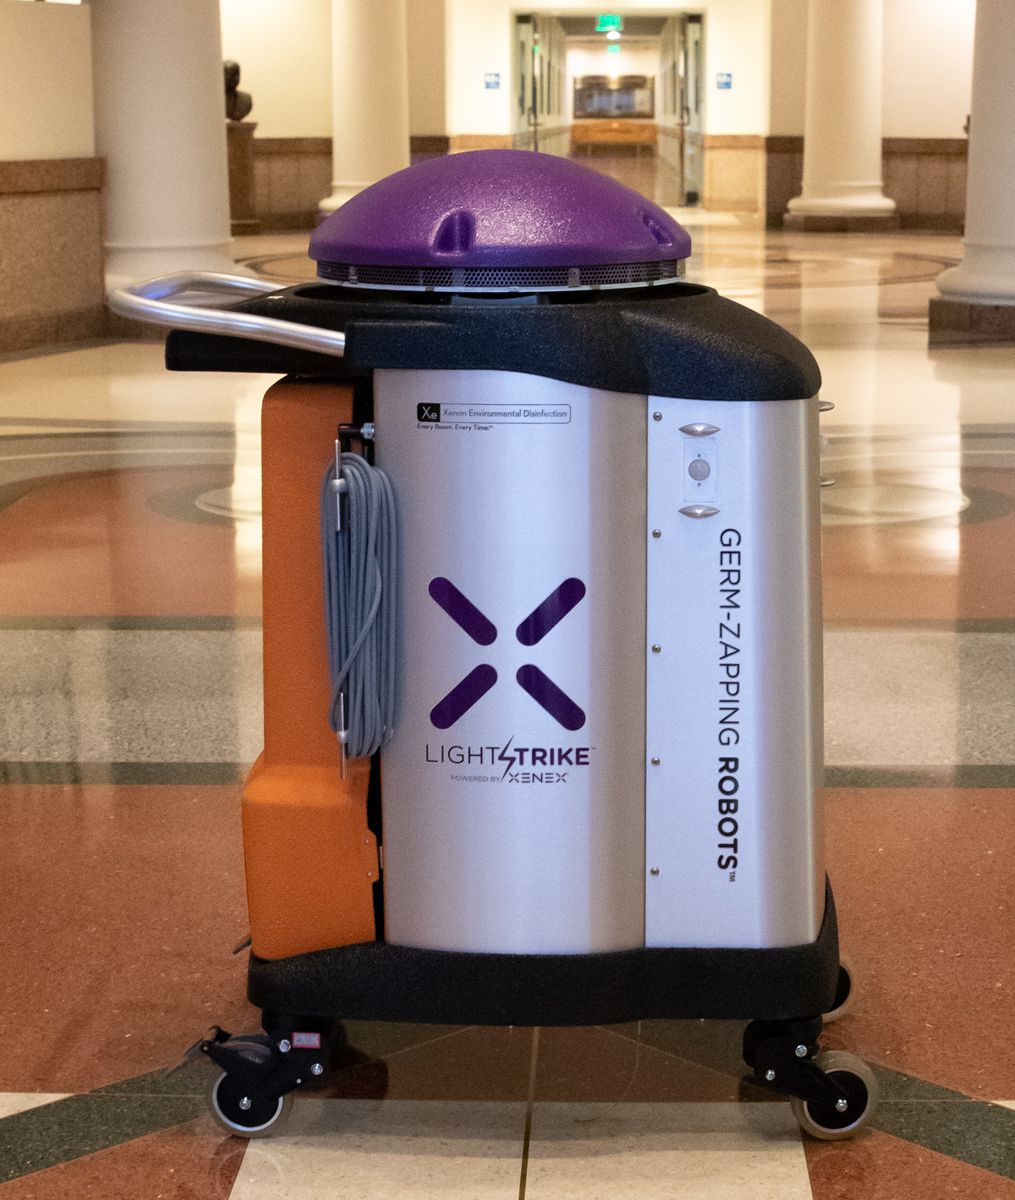 To protect visitors and Texas Capitol occupants from exposure to COVID-19 during next year's session, the Texas House and Senate will use mobile sanitizing machines made by San Antonio-based Xenex Disinfection Services Inc. Each chamber will have five. One is shown in a hallway at the Capitol Extension in Austin on Sept. 22, 2020. They'll be deployed in the Capitol, Extension, John H. Reagan Building and Sam Houston Building, officials said.